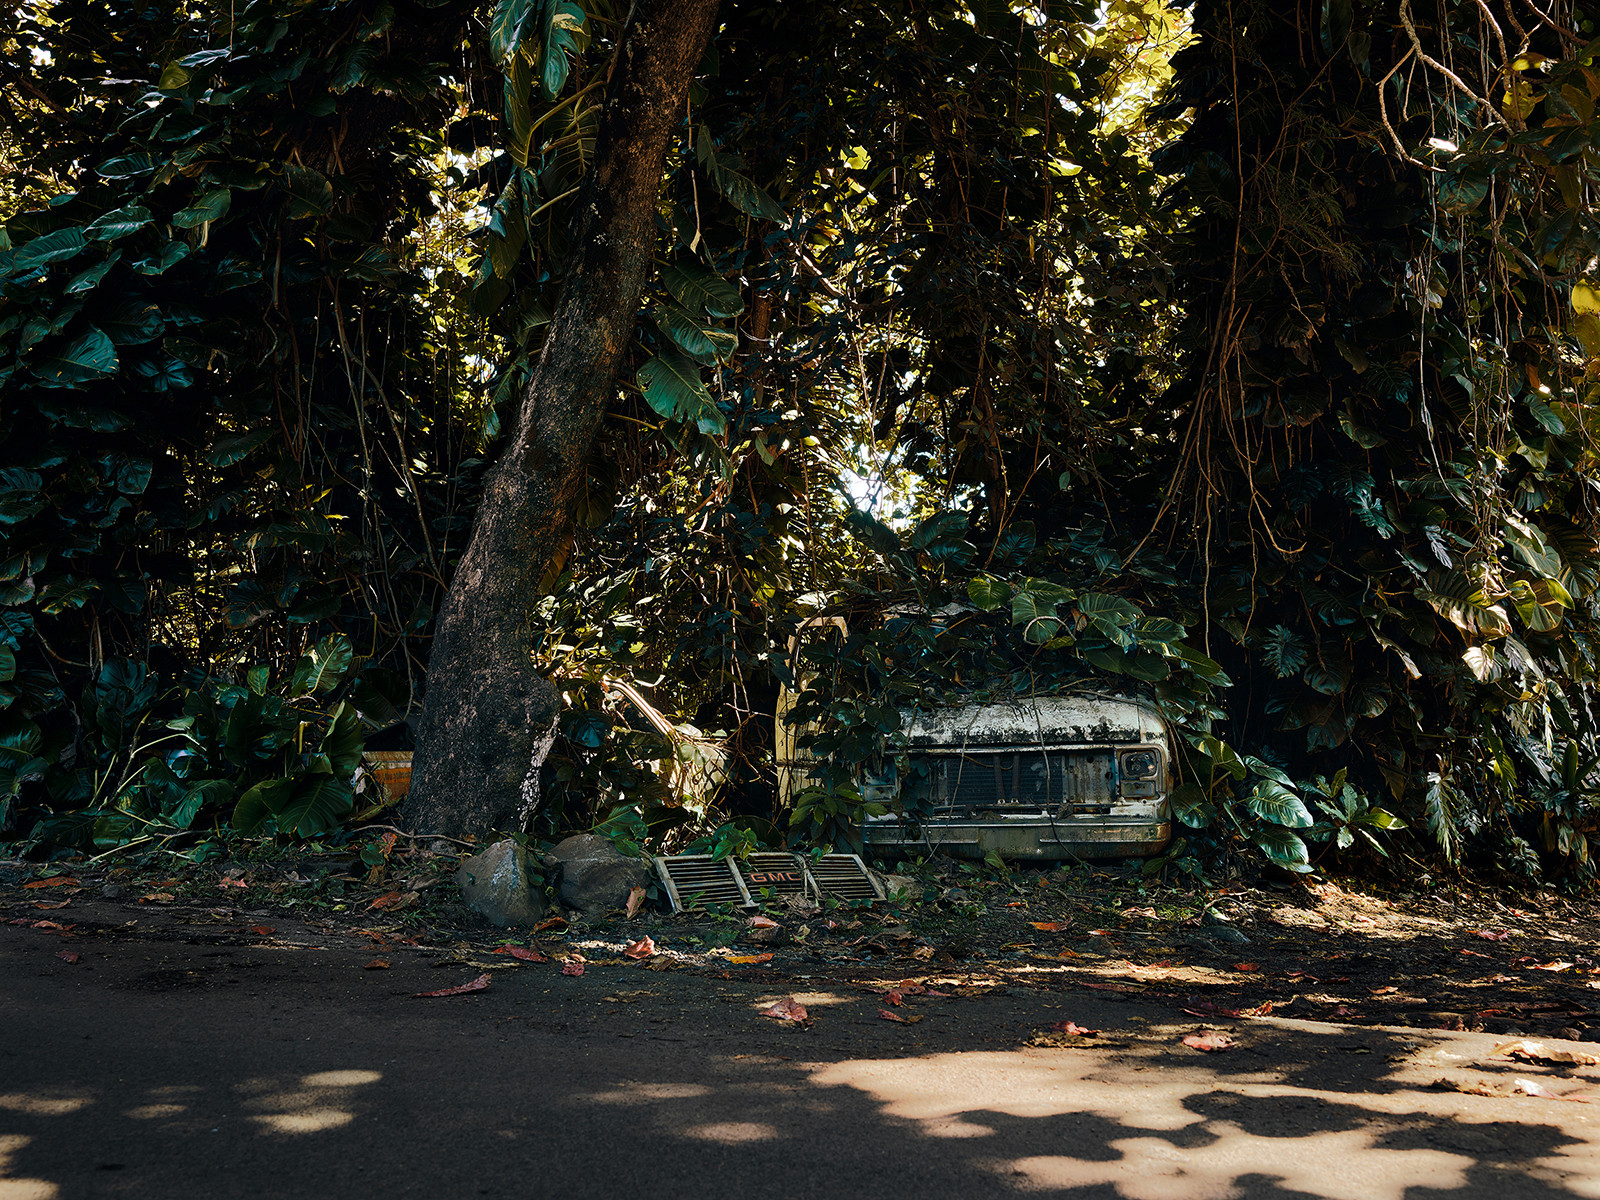 Jungle Cars of Maui personal work 9 by Thomas STROGALSKI